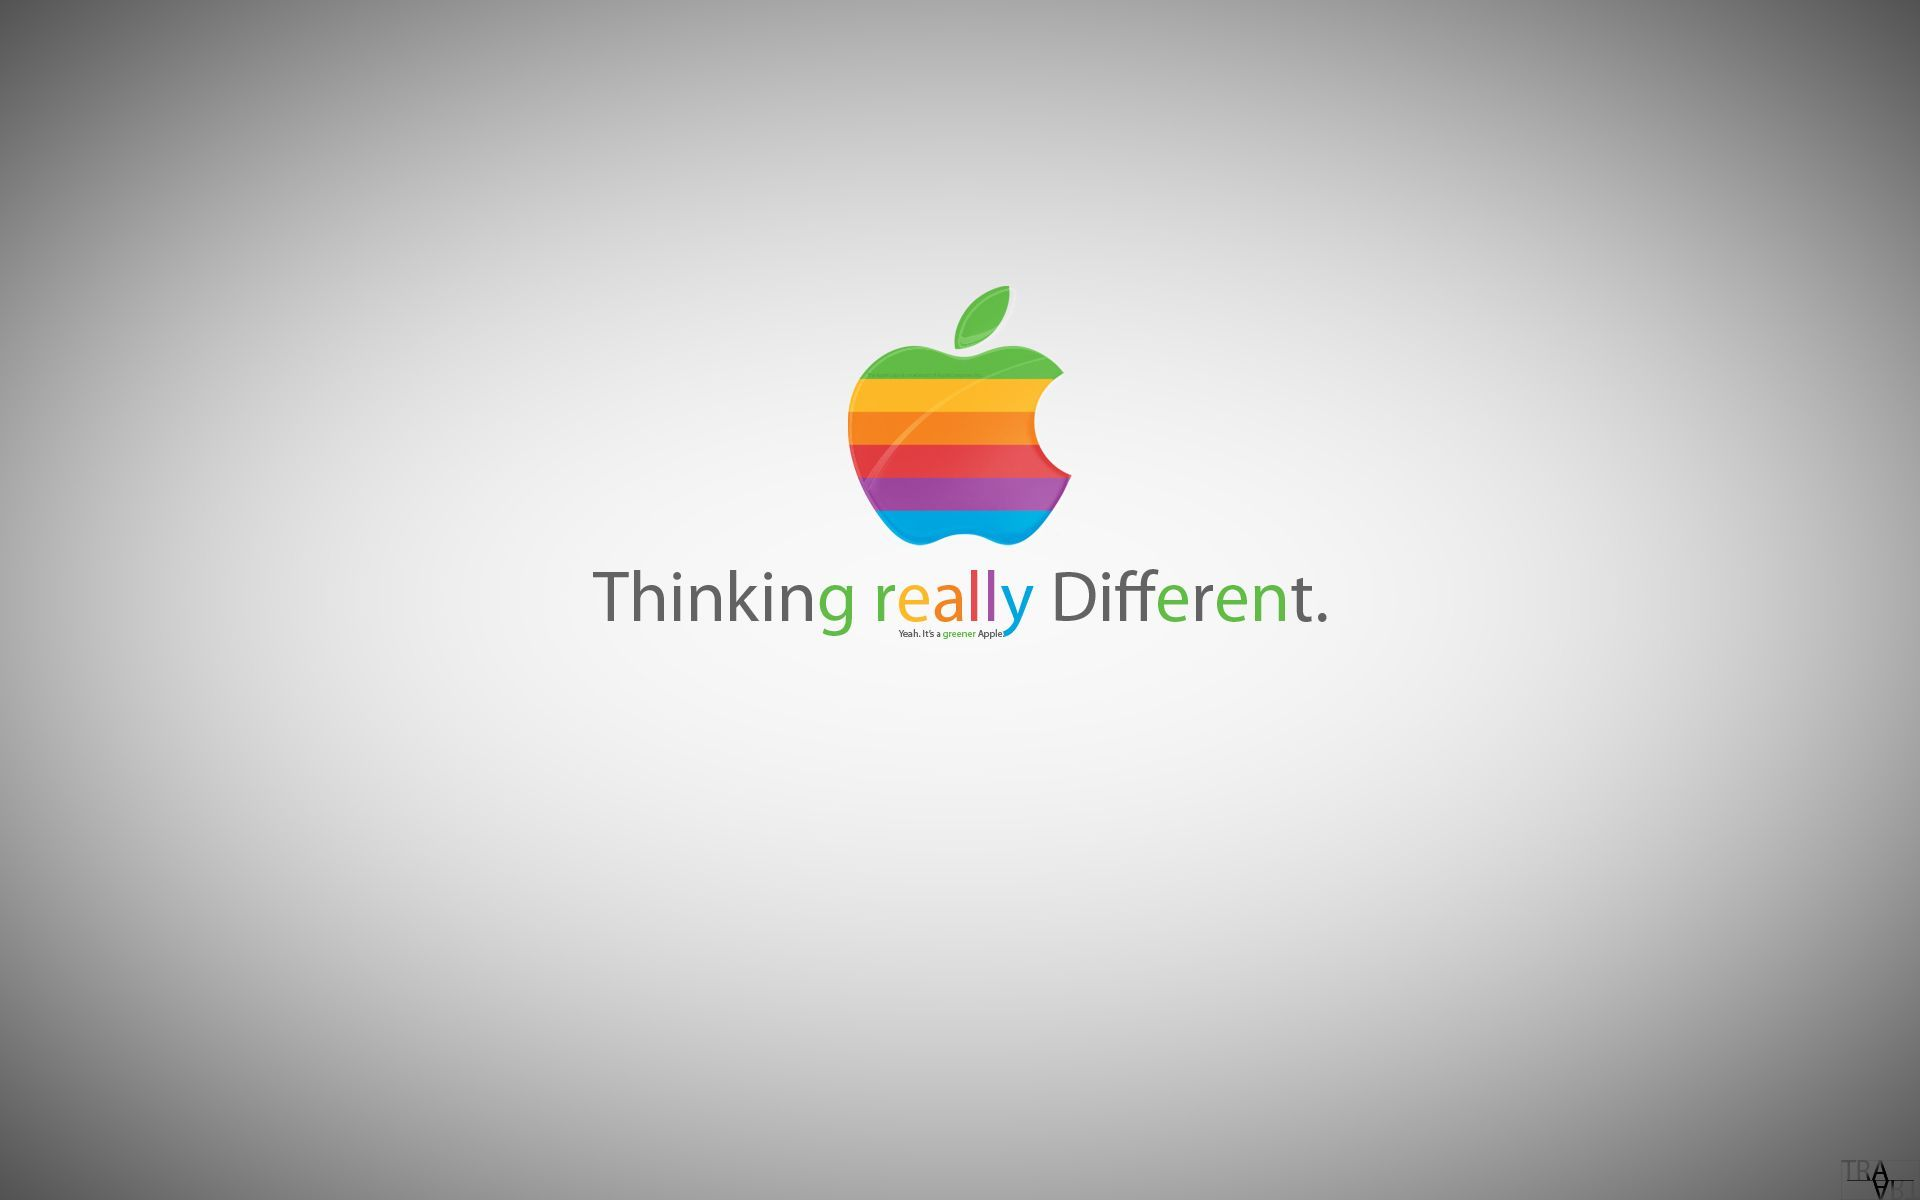 Images of Apple Think Different Ad - #rock-cafe